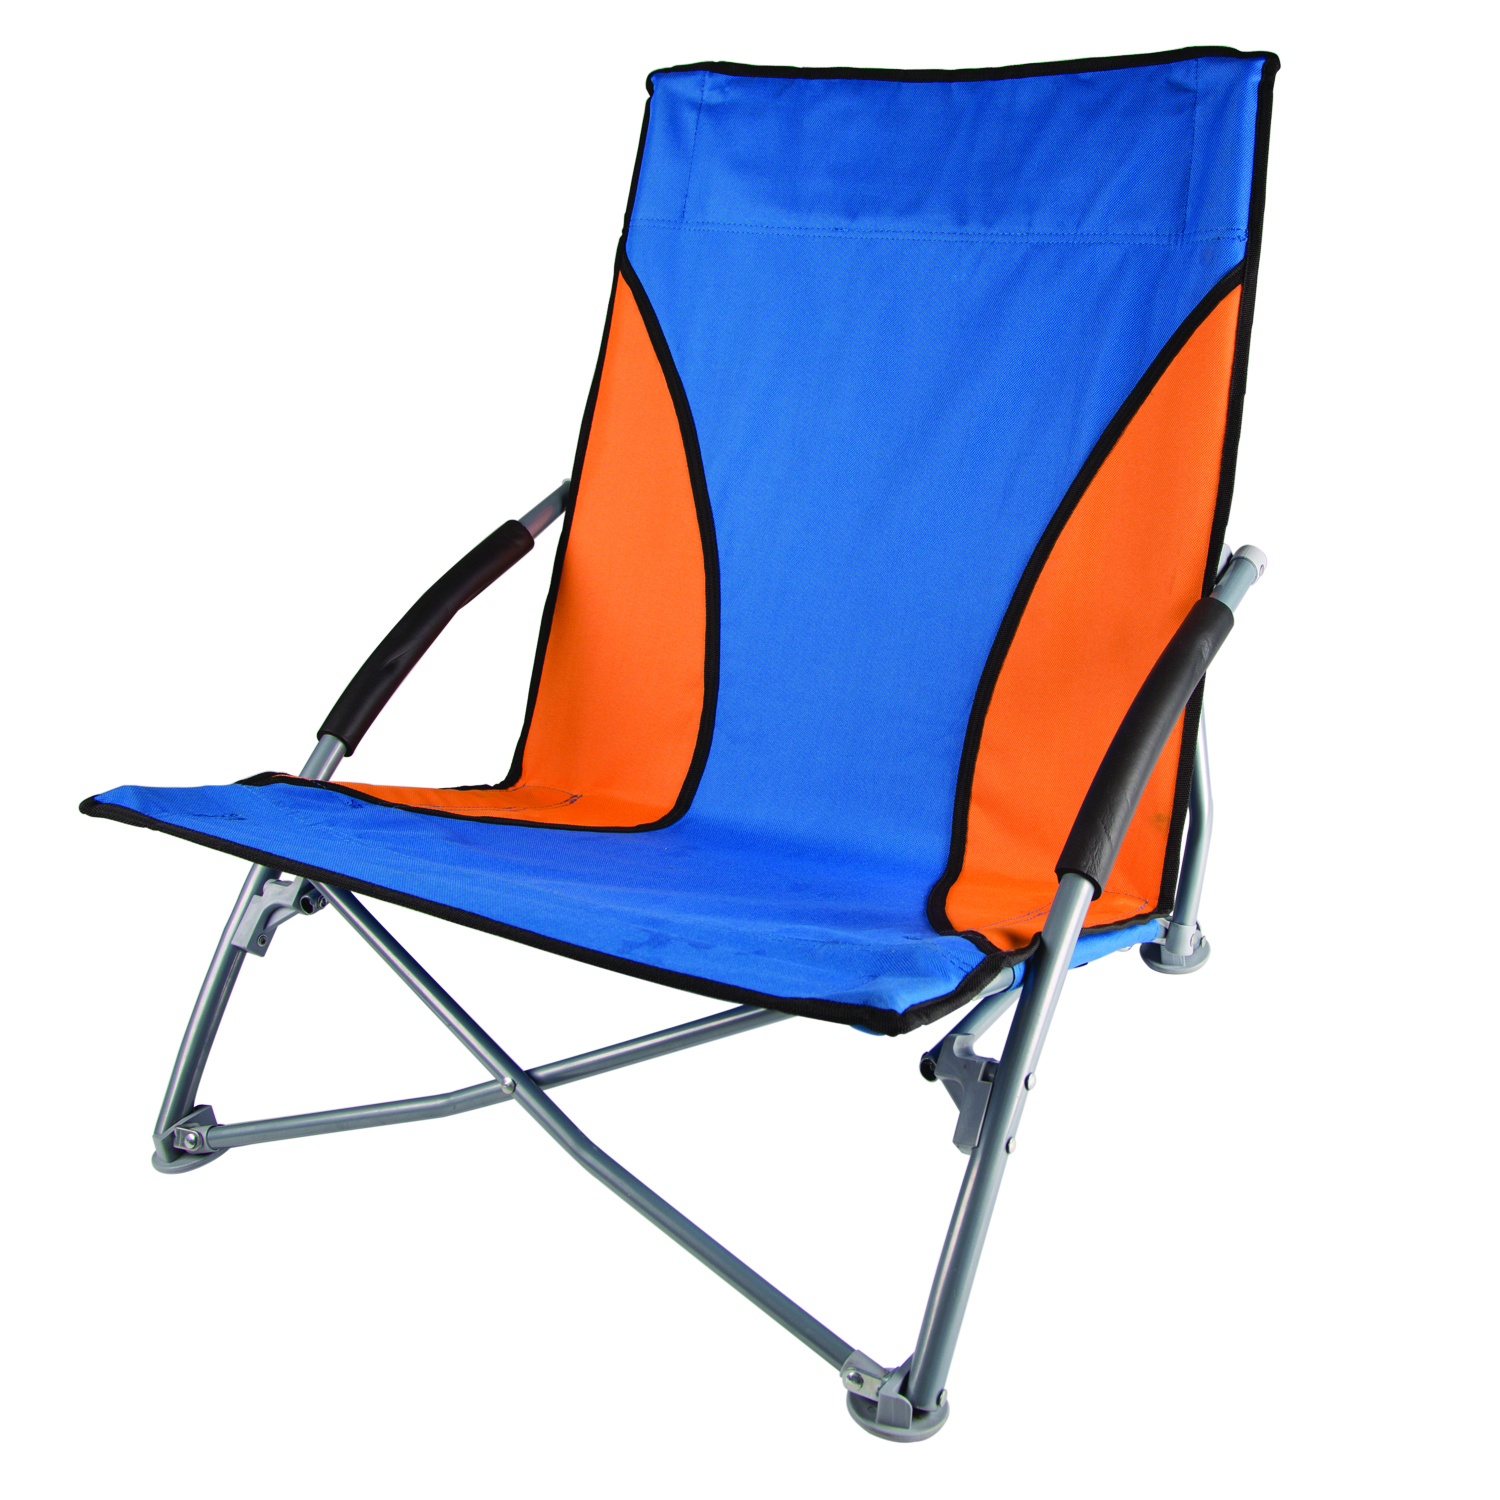 fold up chairs sports direct red poang chair stansport low profile blue and orange